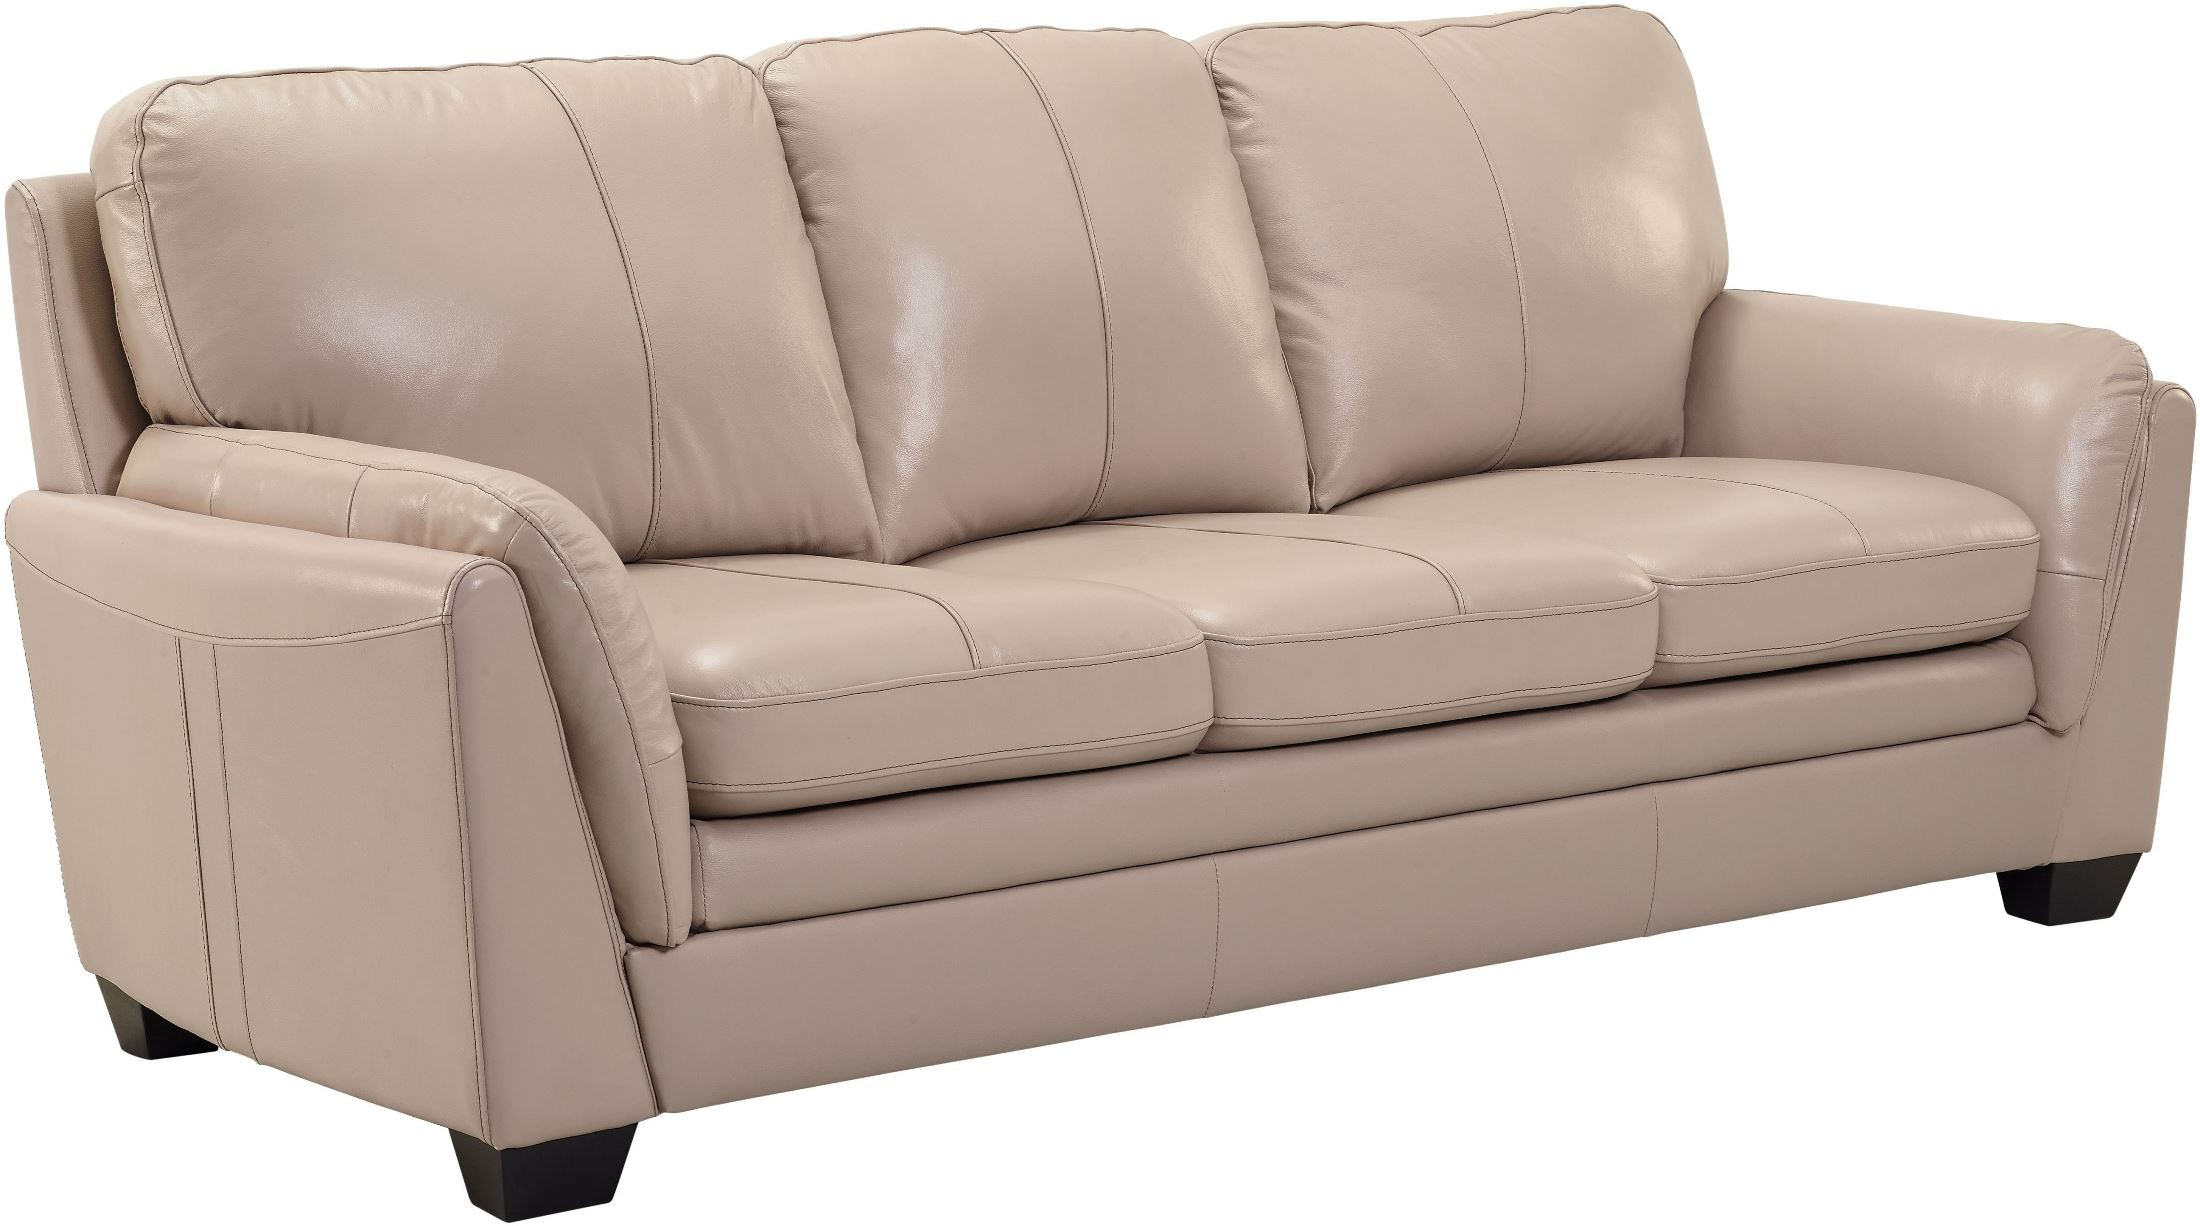 Sofa Gianni Gianni Beige Sofa From New Classic | Coleman Furniture